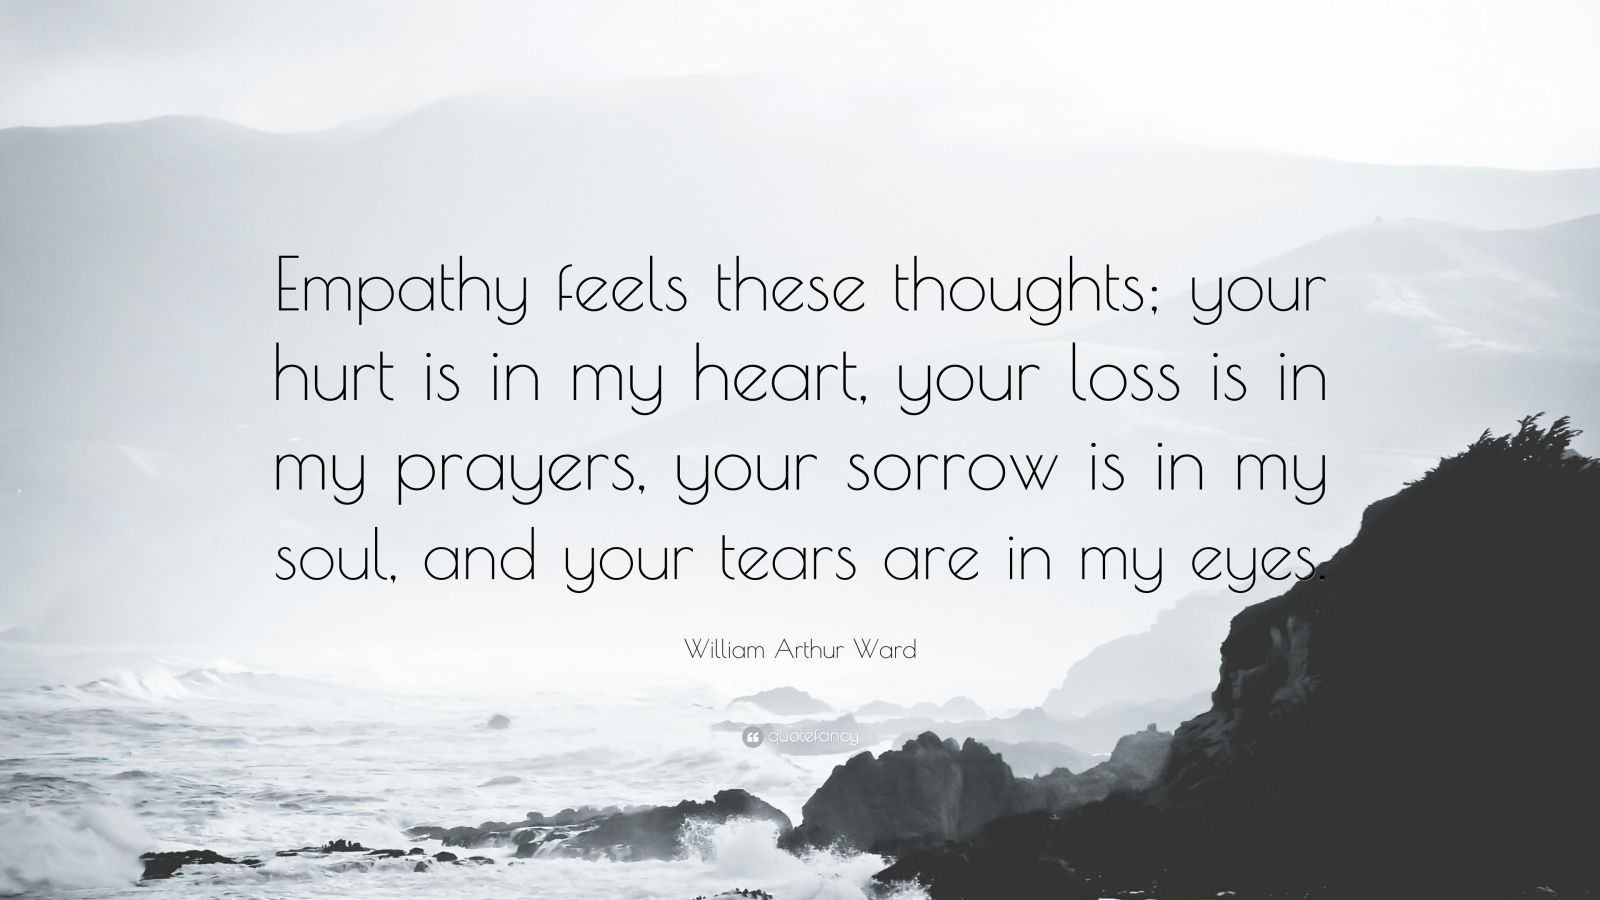 """William Arthur Ward Quote: """"Empathy feels these thoughts; your hurt is in my heart, your loss is in my prayers, your sorrow is in my soul, and your tears are in my eyes."""""""